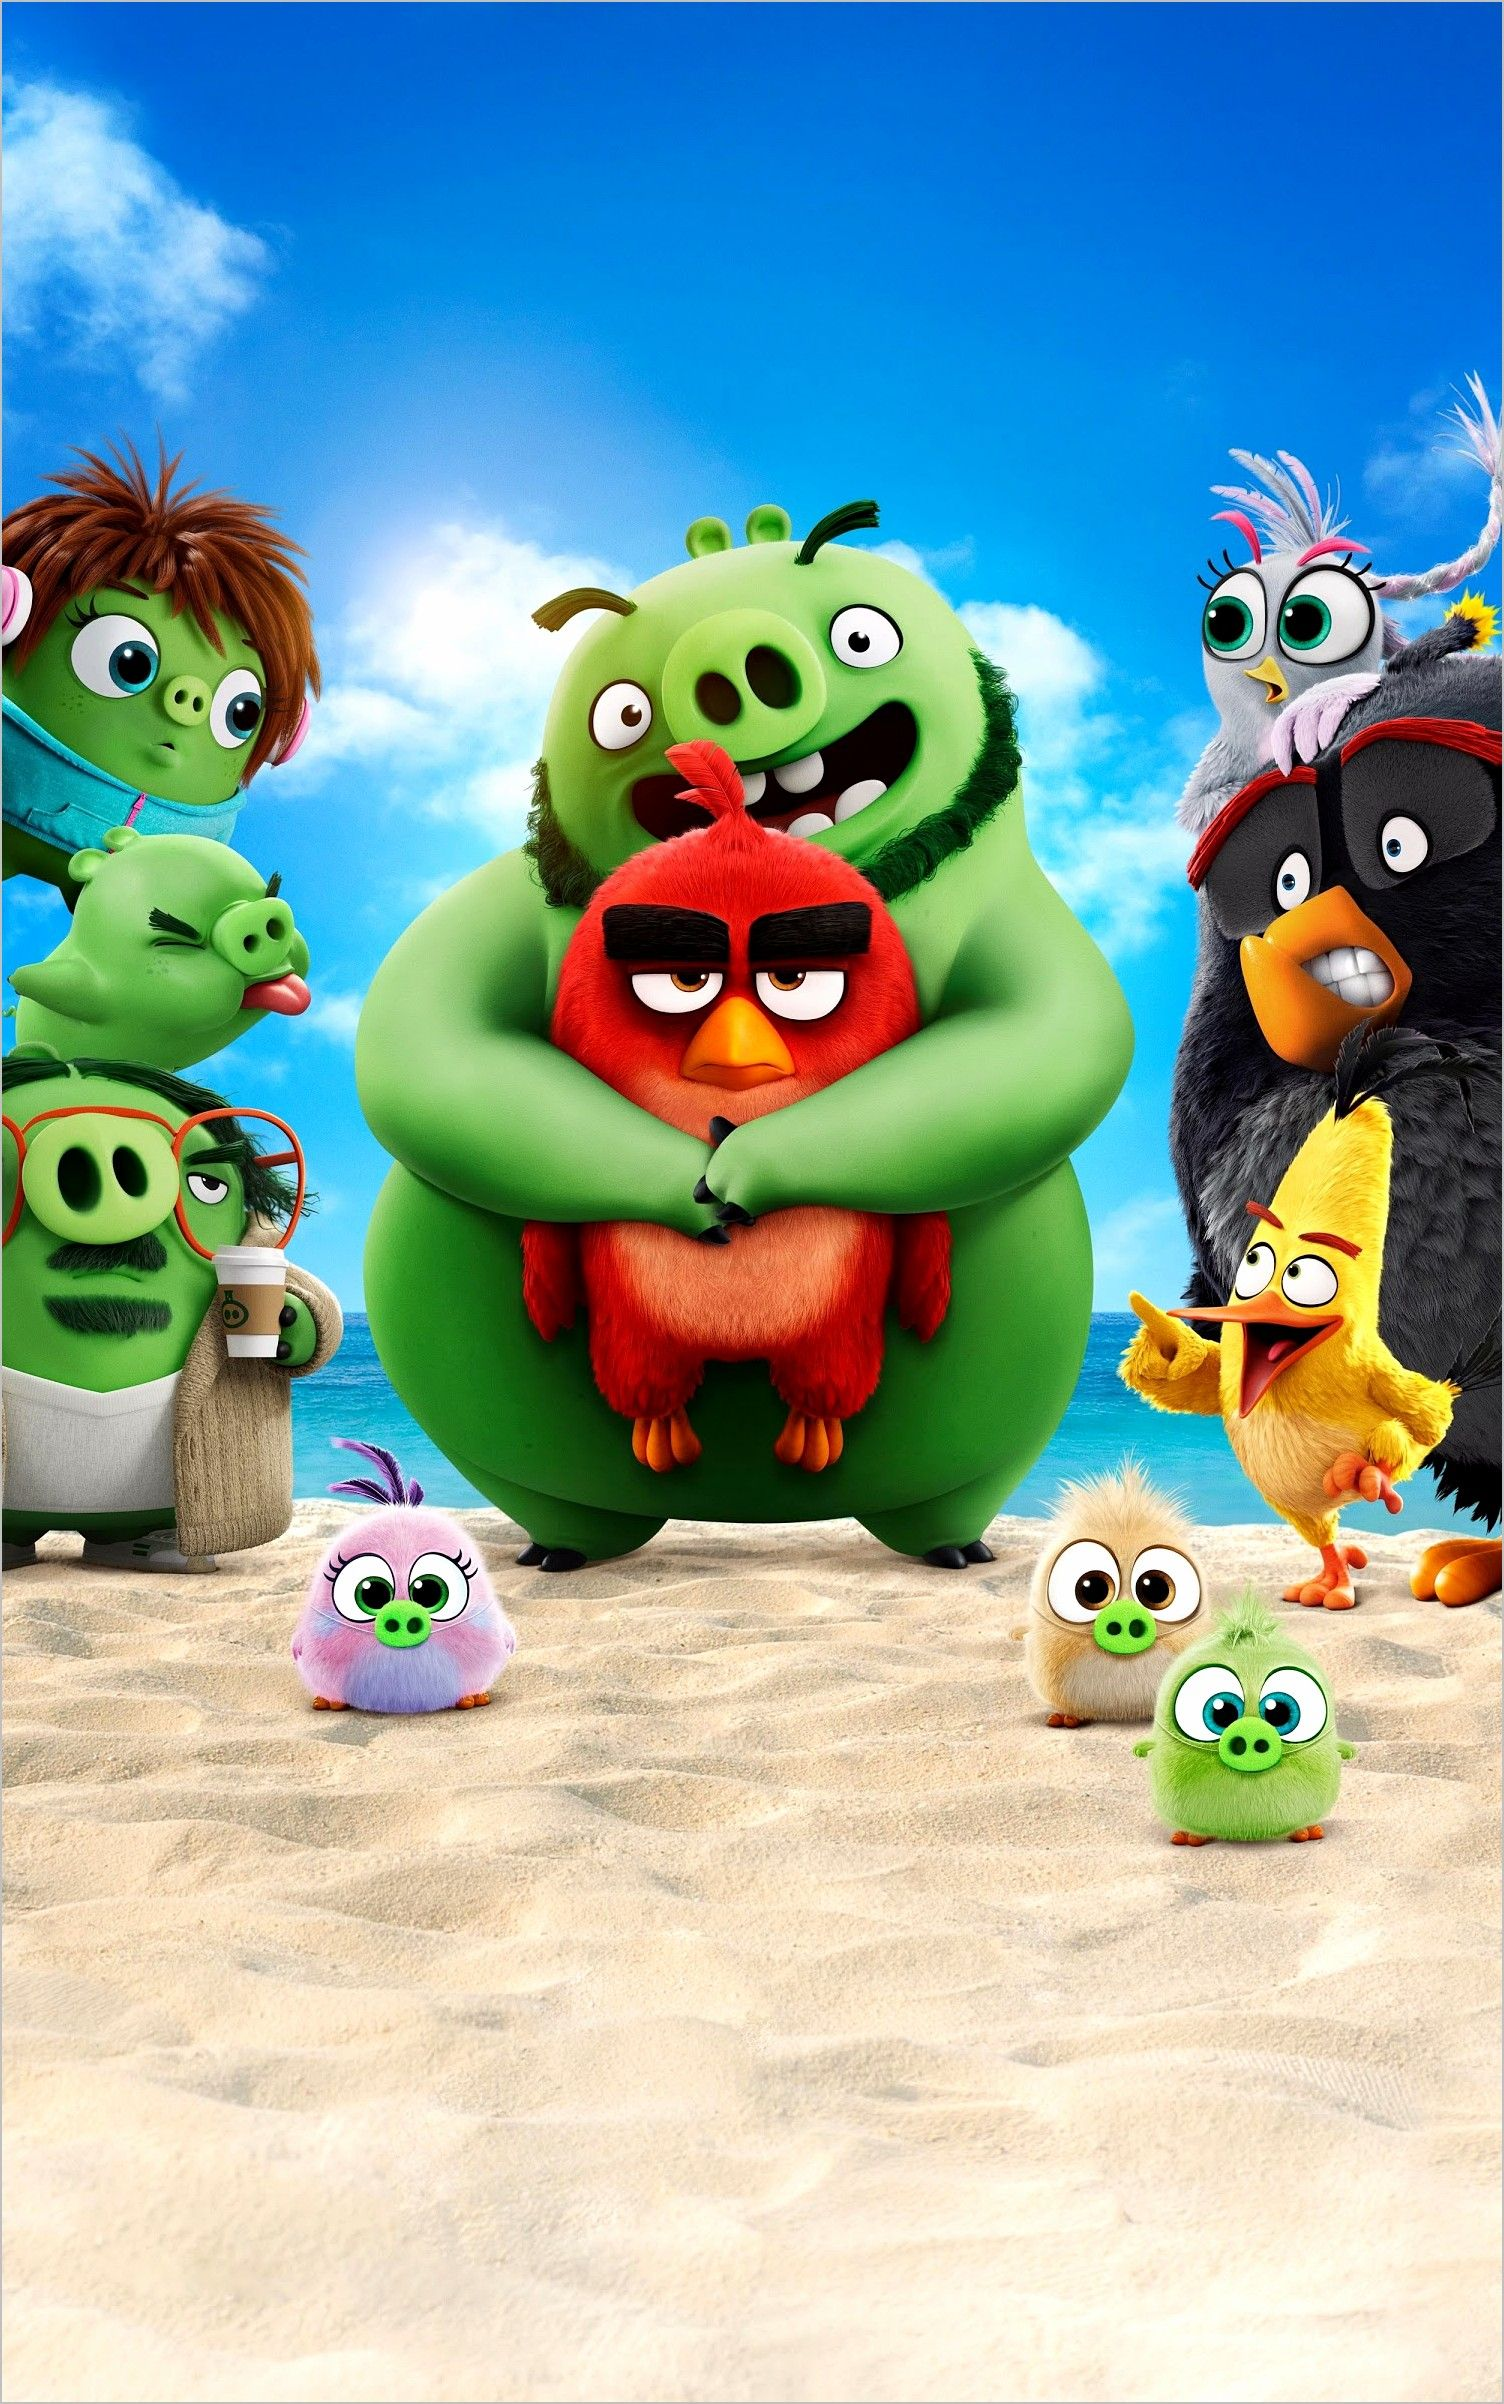 Angry Birds 4k Wallpaper In 2020 Angry Birds Movie Angry Birds Angry Birds 2 Movie